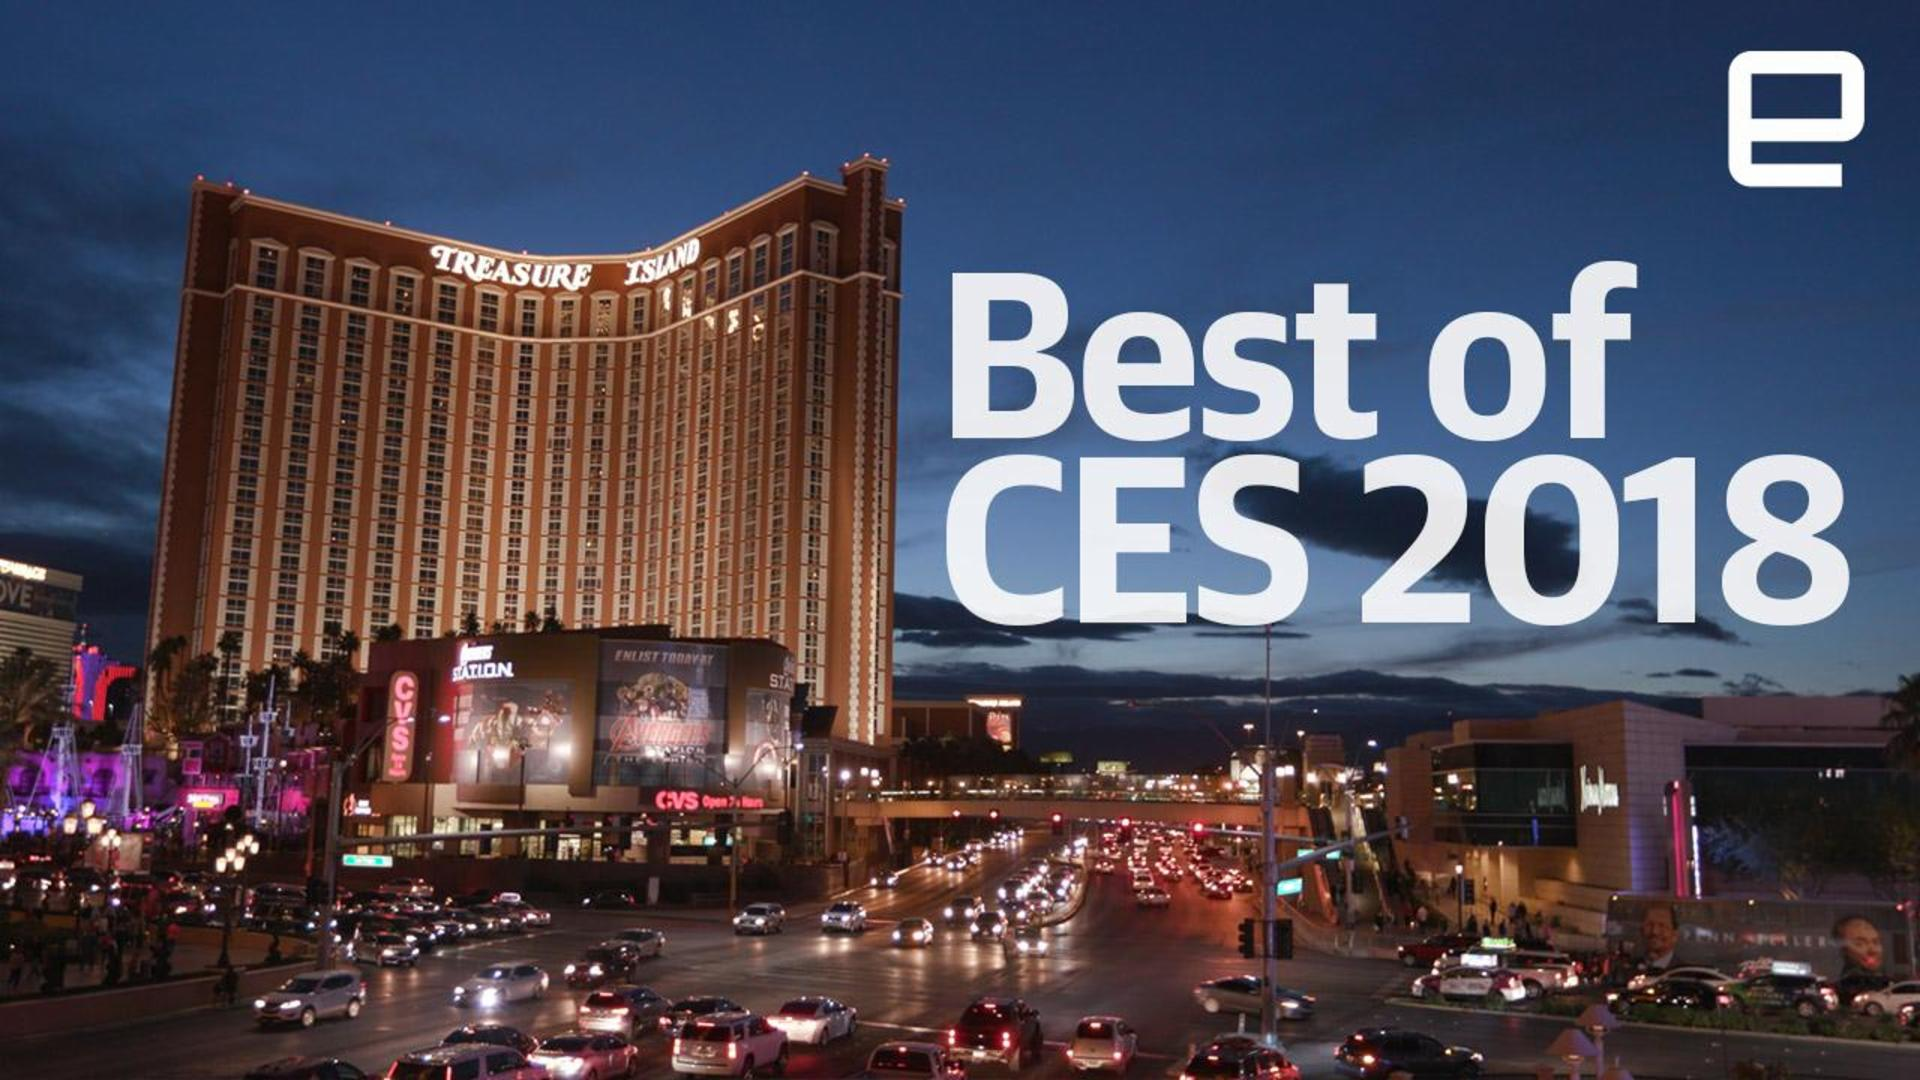 Presenting the Best of CES 2018 winners!